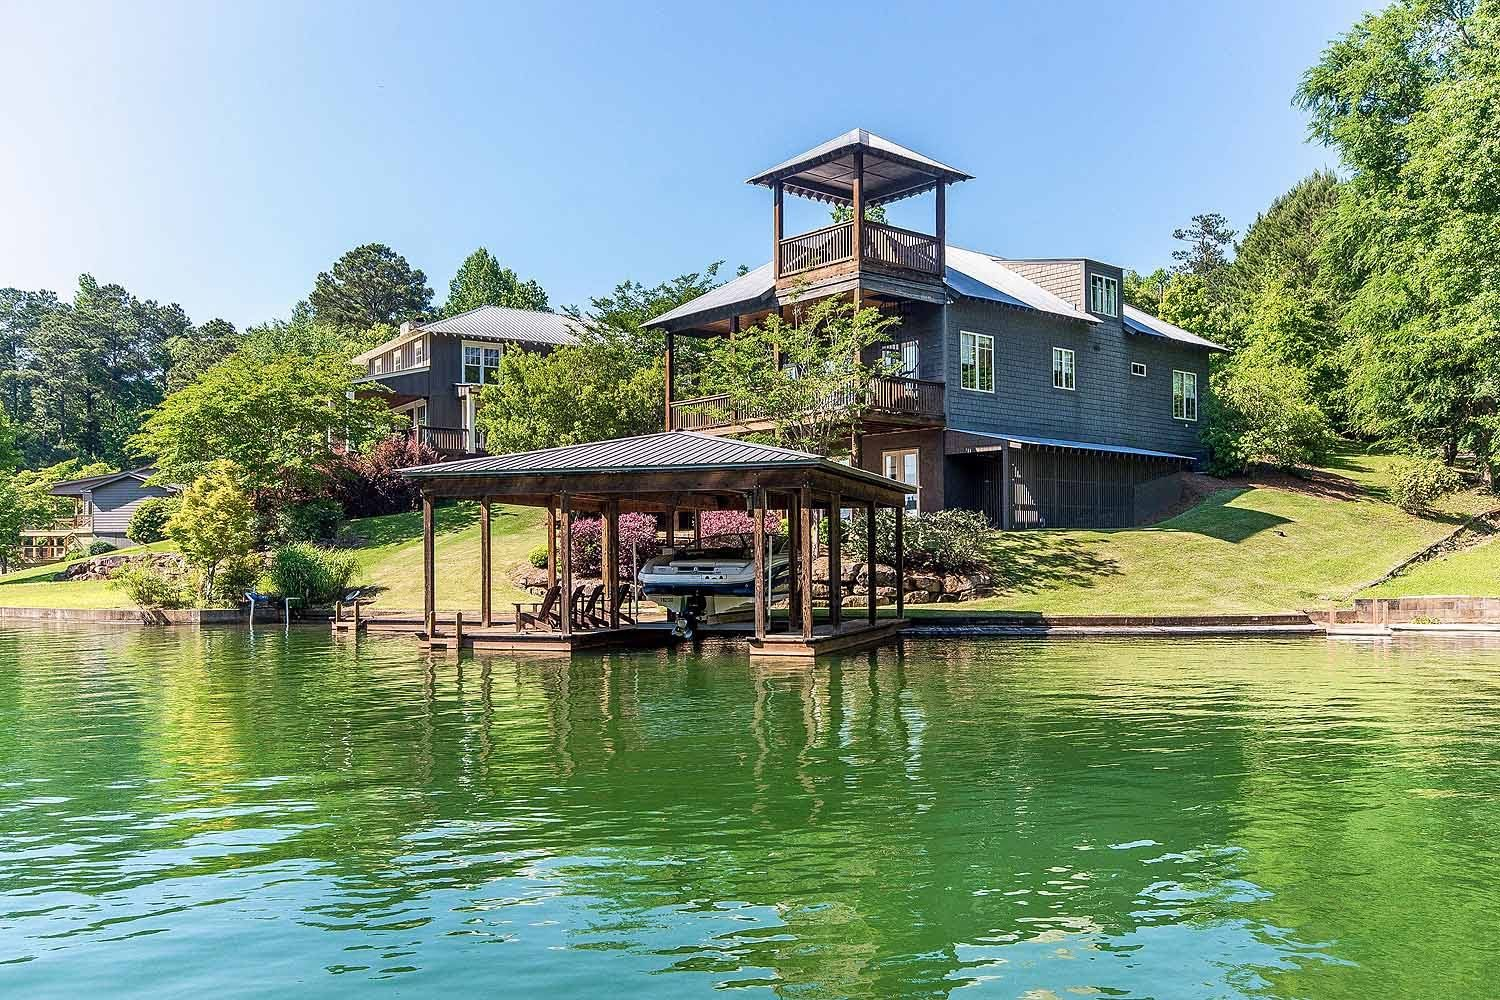 CLICK2TOUR 344 Blocker Rd off Parker Creek on Lake Martin. Charming 4BR/4.5BA Craftsman w/ 2 living areas, 20' ceiling in main living areas, stone fireplace, mulitple covered porches + tower. boathouse w/lift, pier, deck, beautifully landscaped and much more! For more details, call/text Amanda Scroggins, (256)749-6634, RE/MAX Around the Lake. Photos & tour by Sherry Watkins…I Shoot Houses…http://www.Go2REassistant.com/VirtualTours.htm